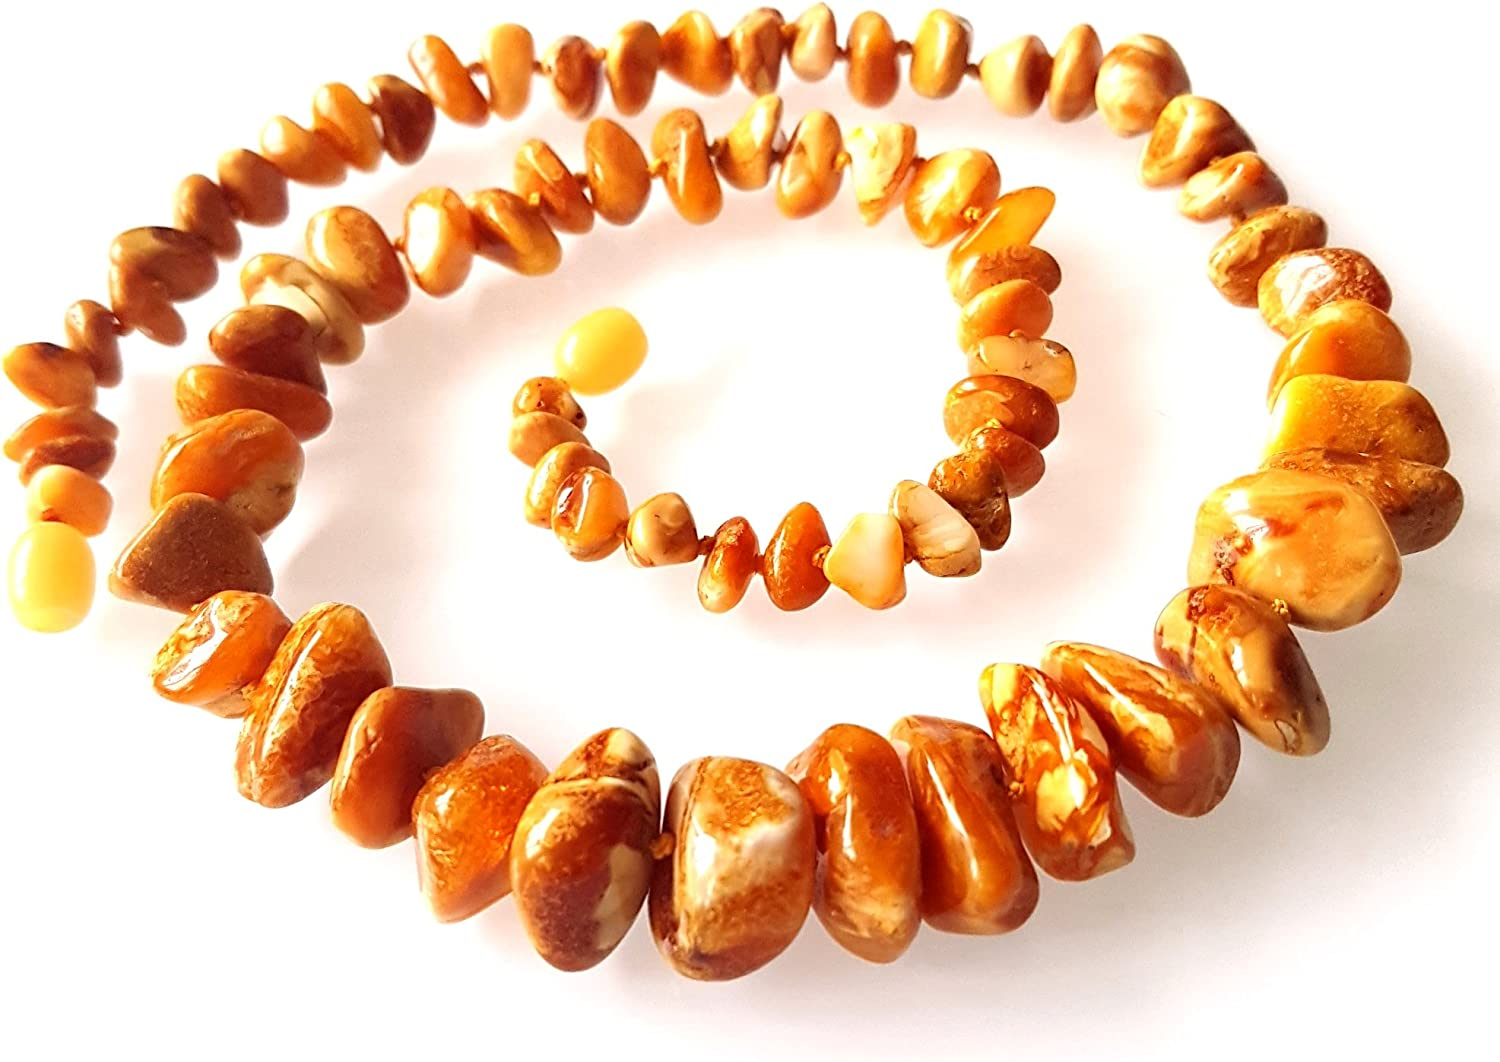 // Certified Genuine Baltic Amber Healing Amber Natural Raw Unpolished Baltic Amber Necklace Women Lang 78 inch 200cm